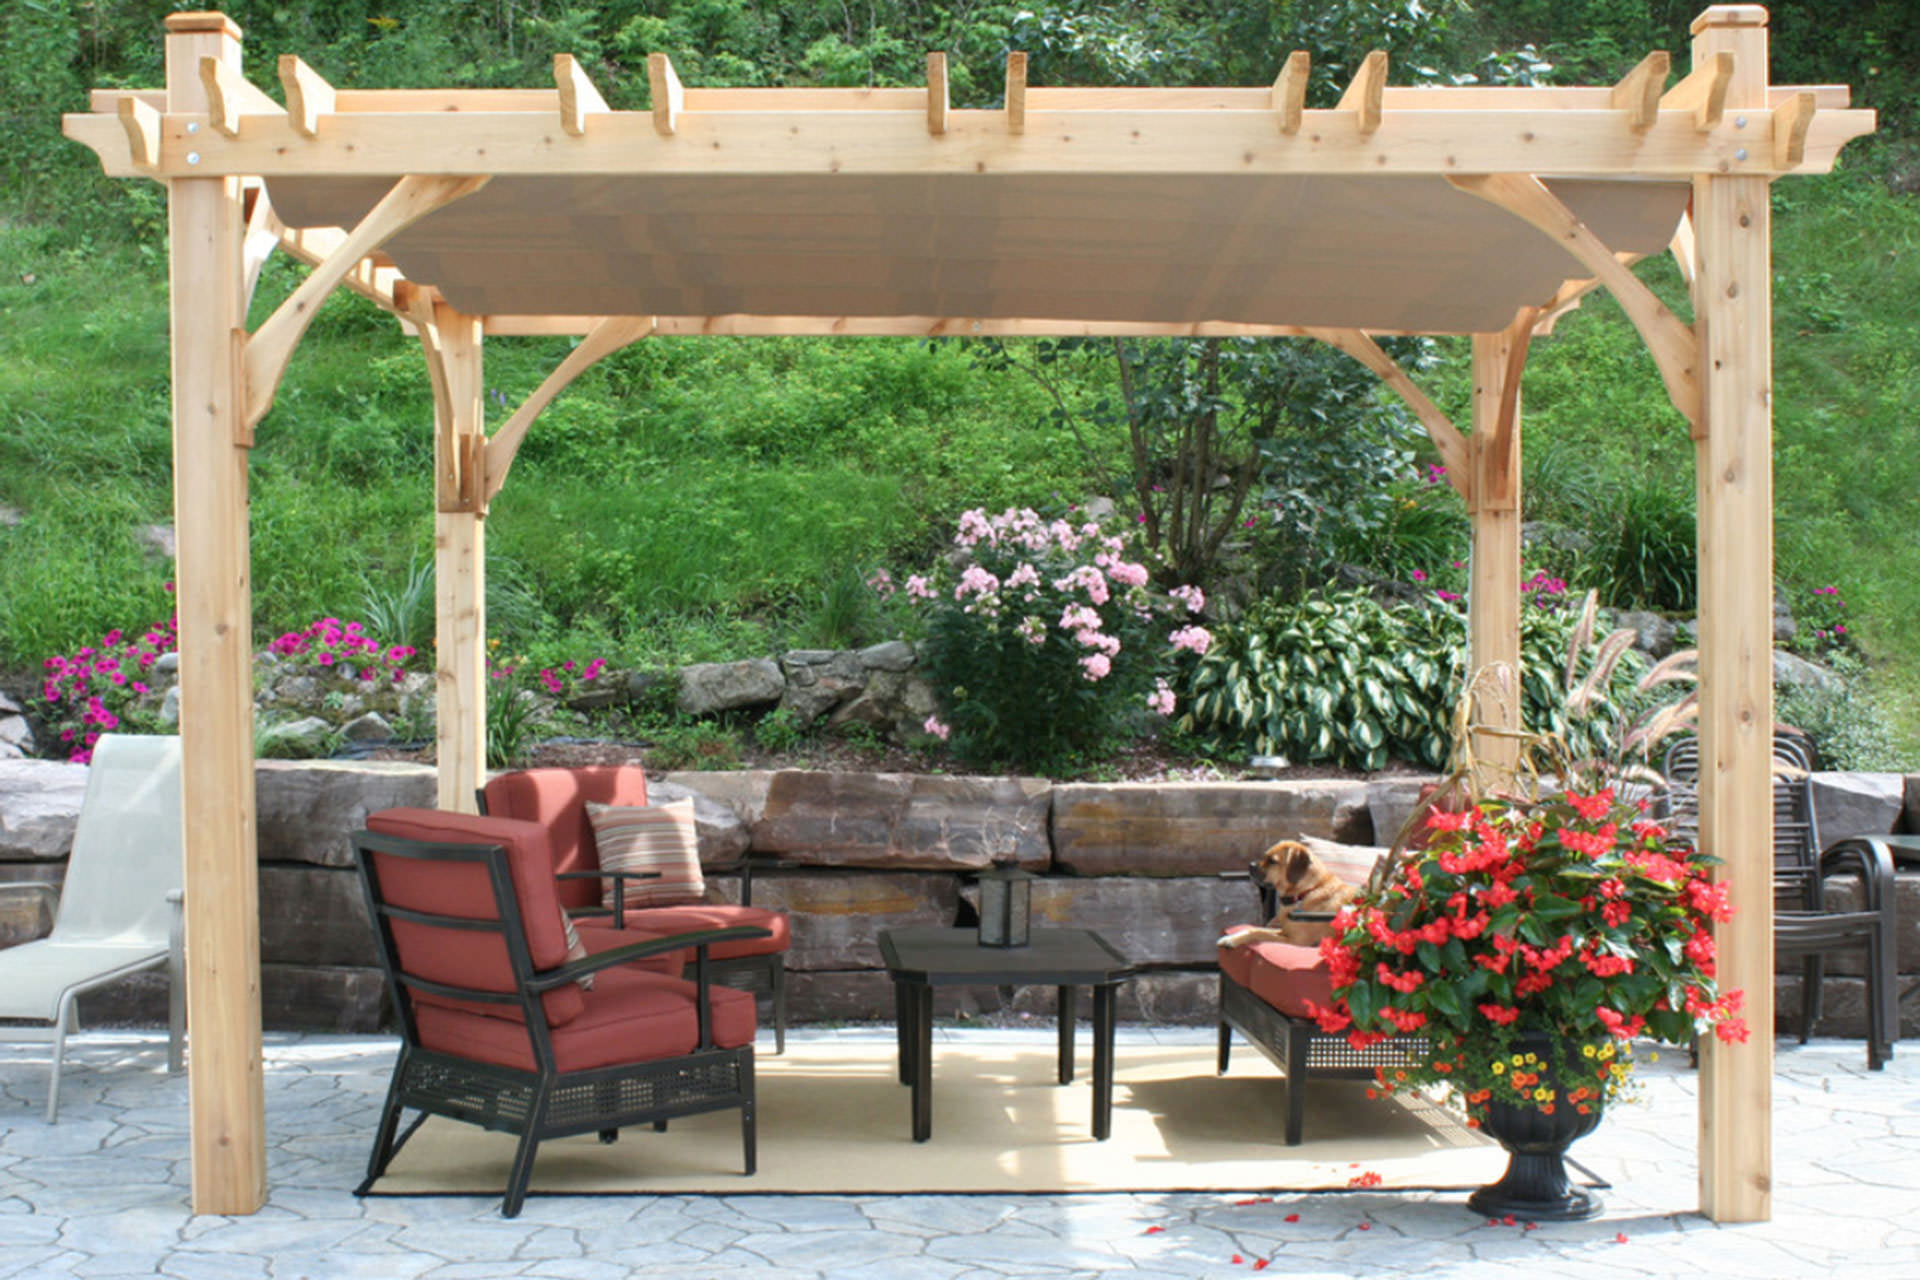 Shade Canopy Fabrics The Details Of